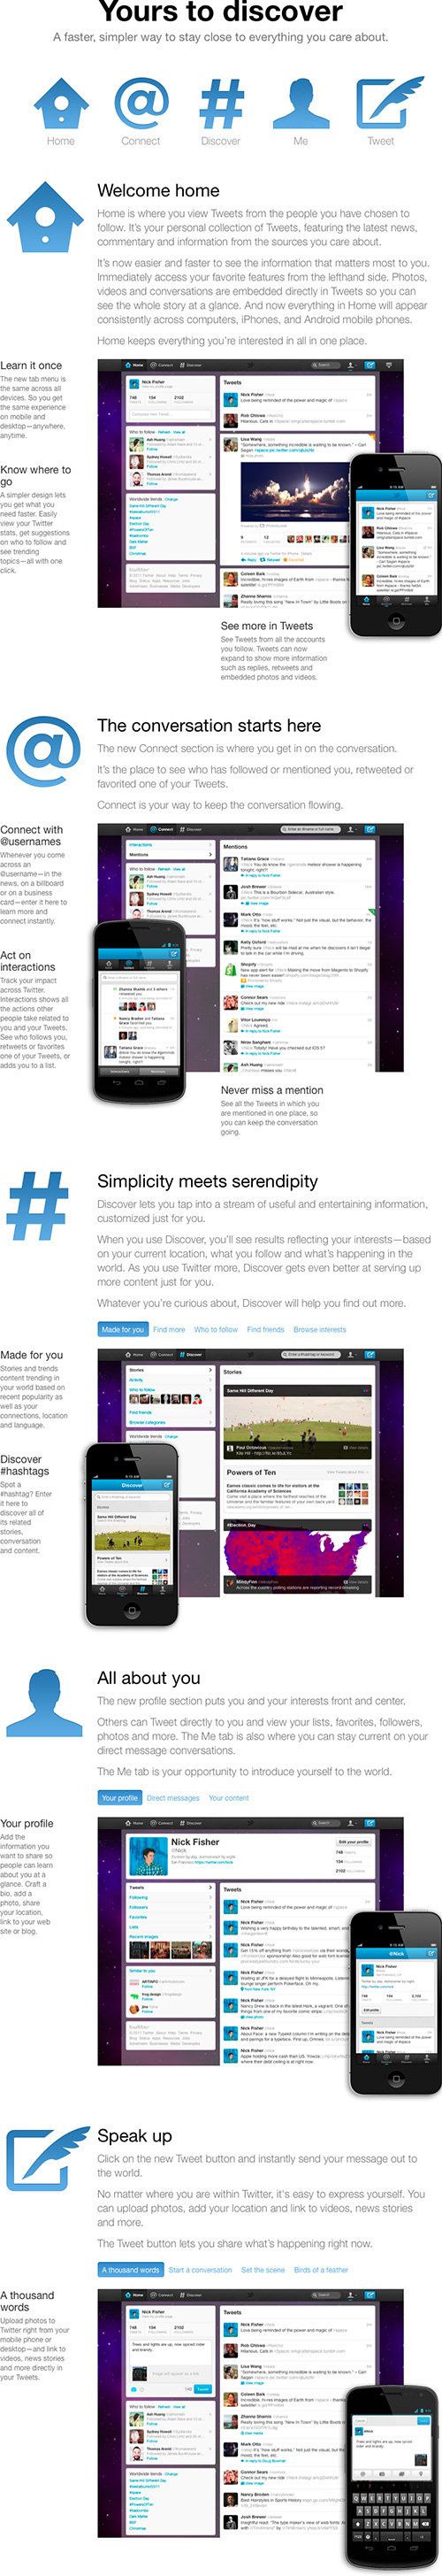 A first look at Twitter's redesign